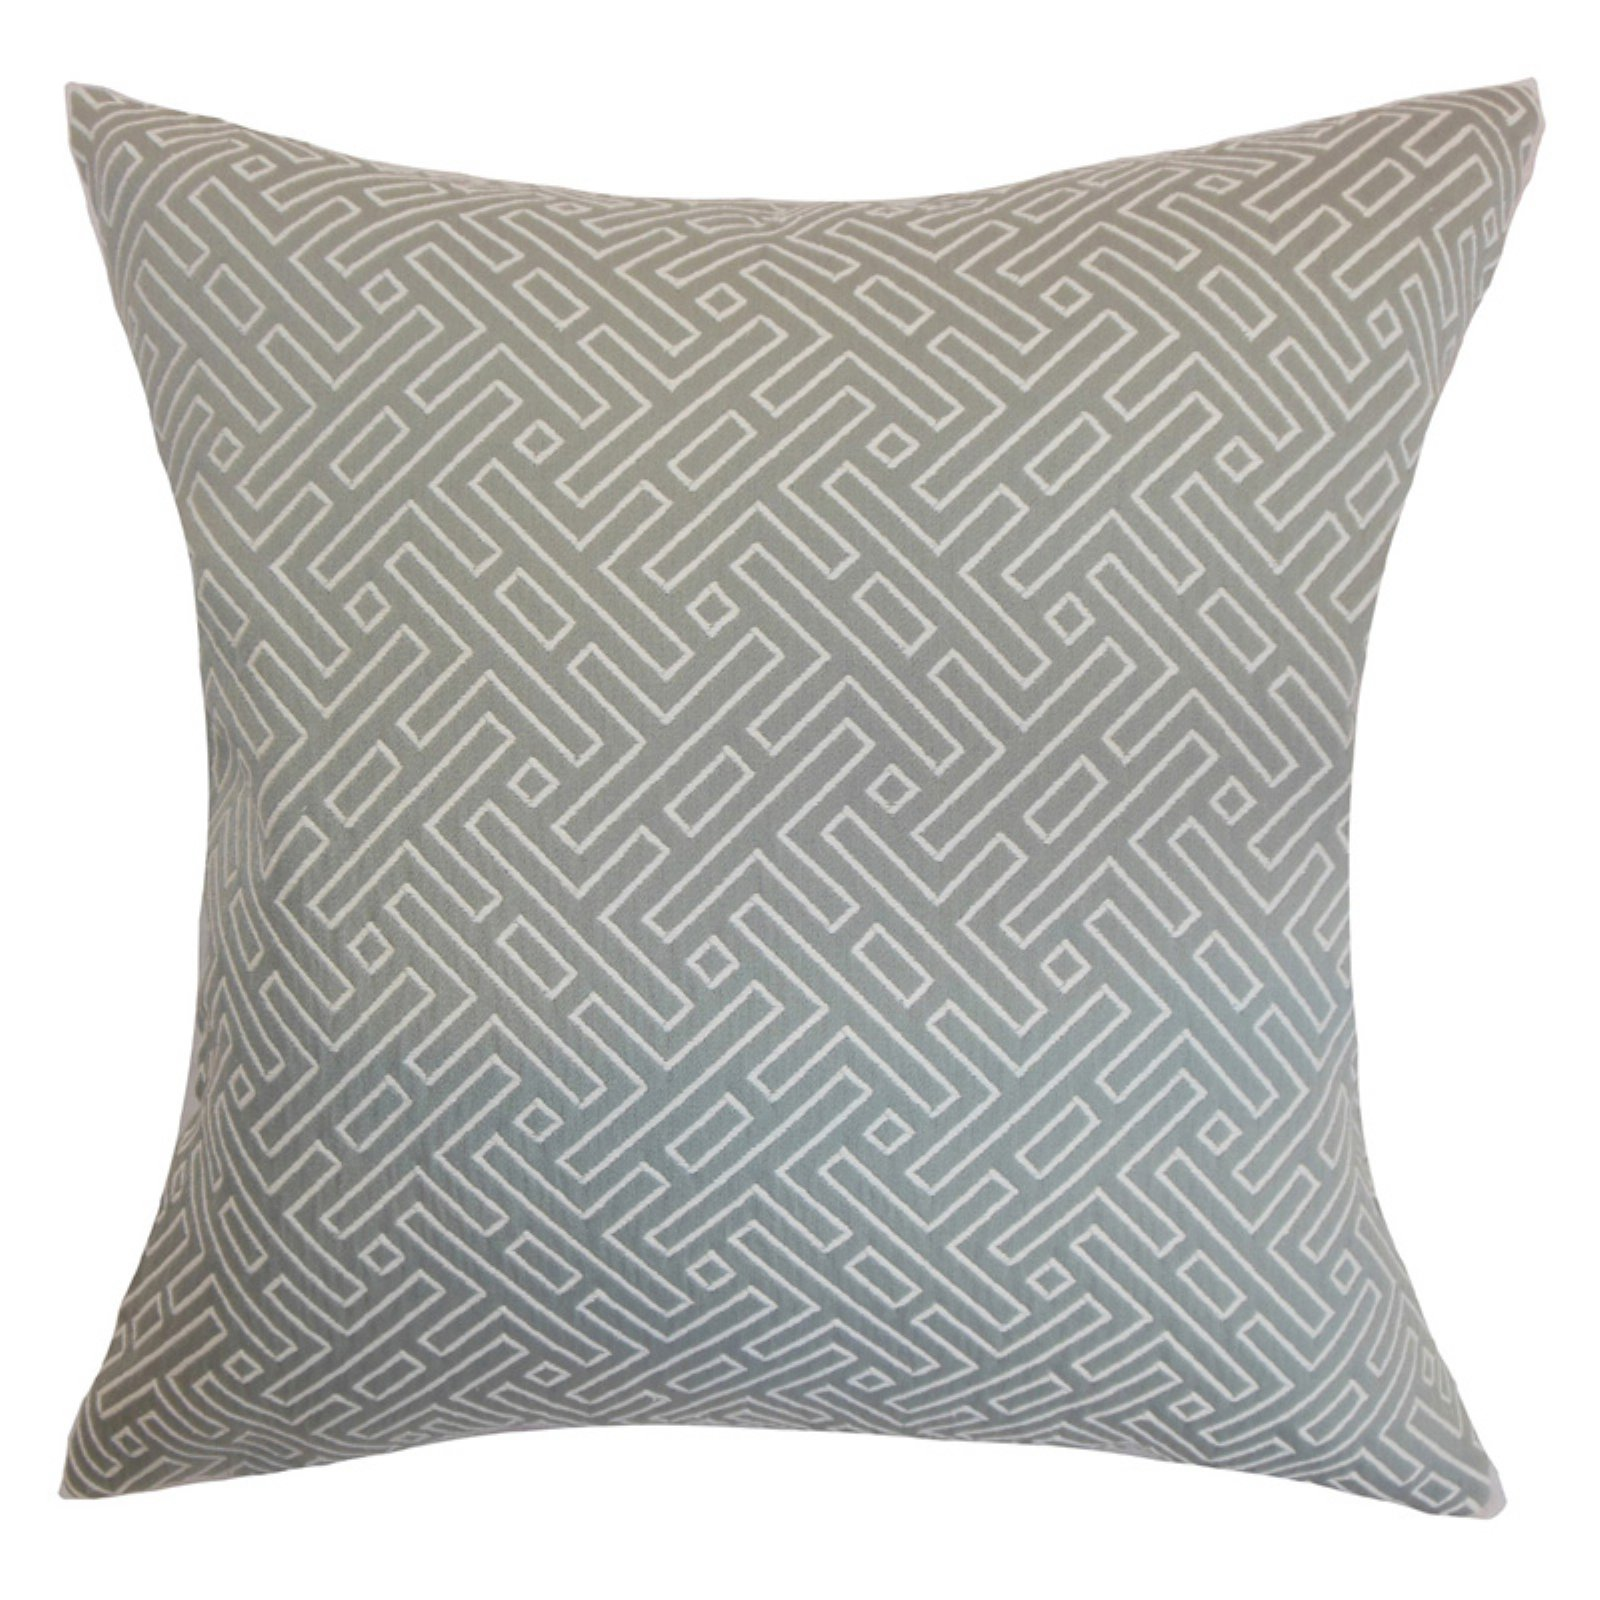 The Pillow Collection Qalanah Geometric Pillow